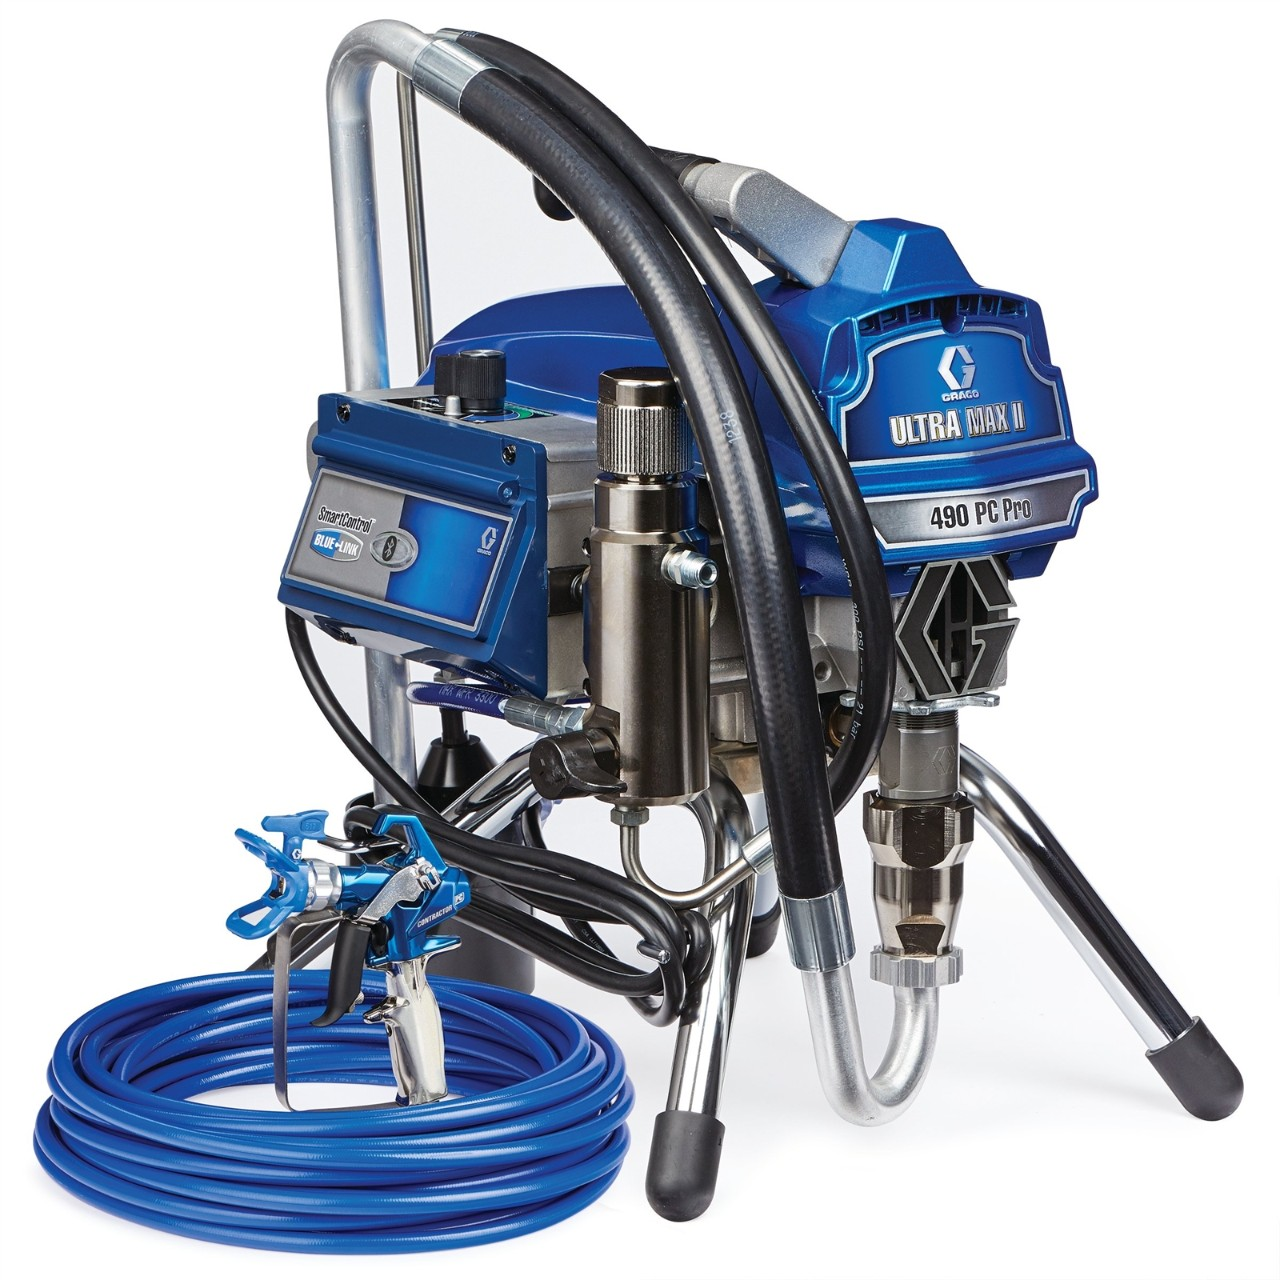 Ultra Max II 490 PC Pro Electric Airless Sprayer, Stand